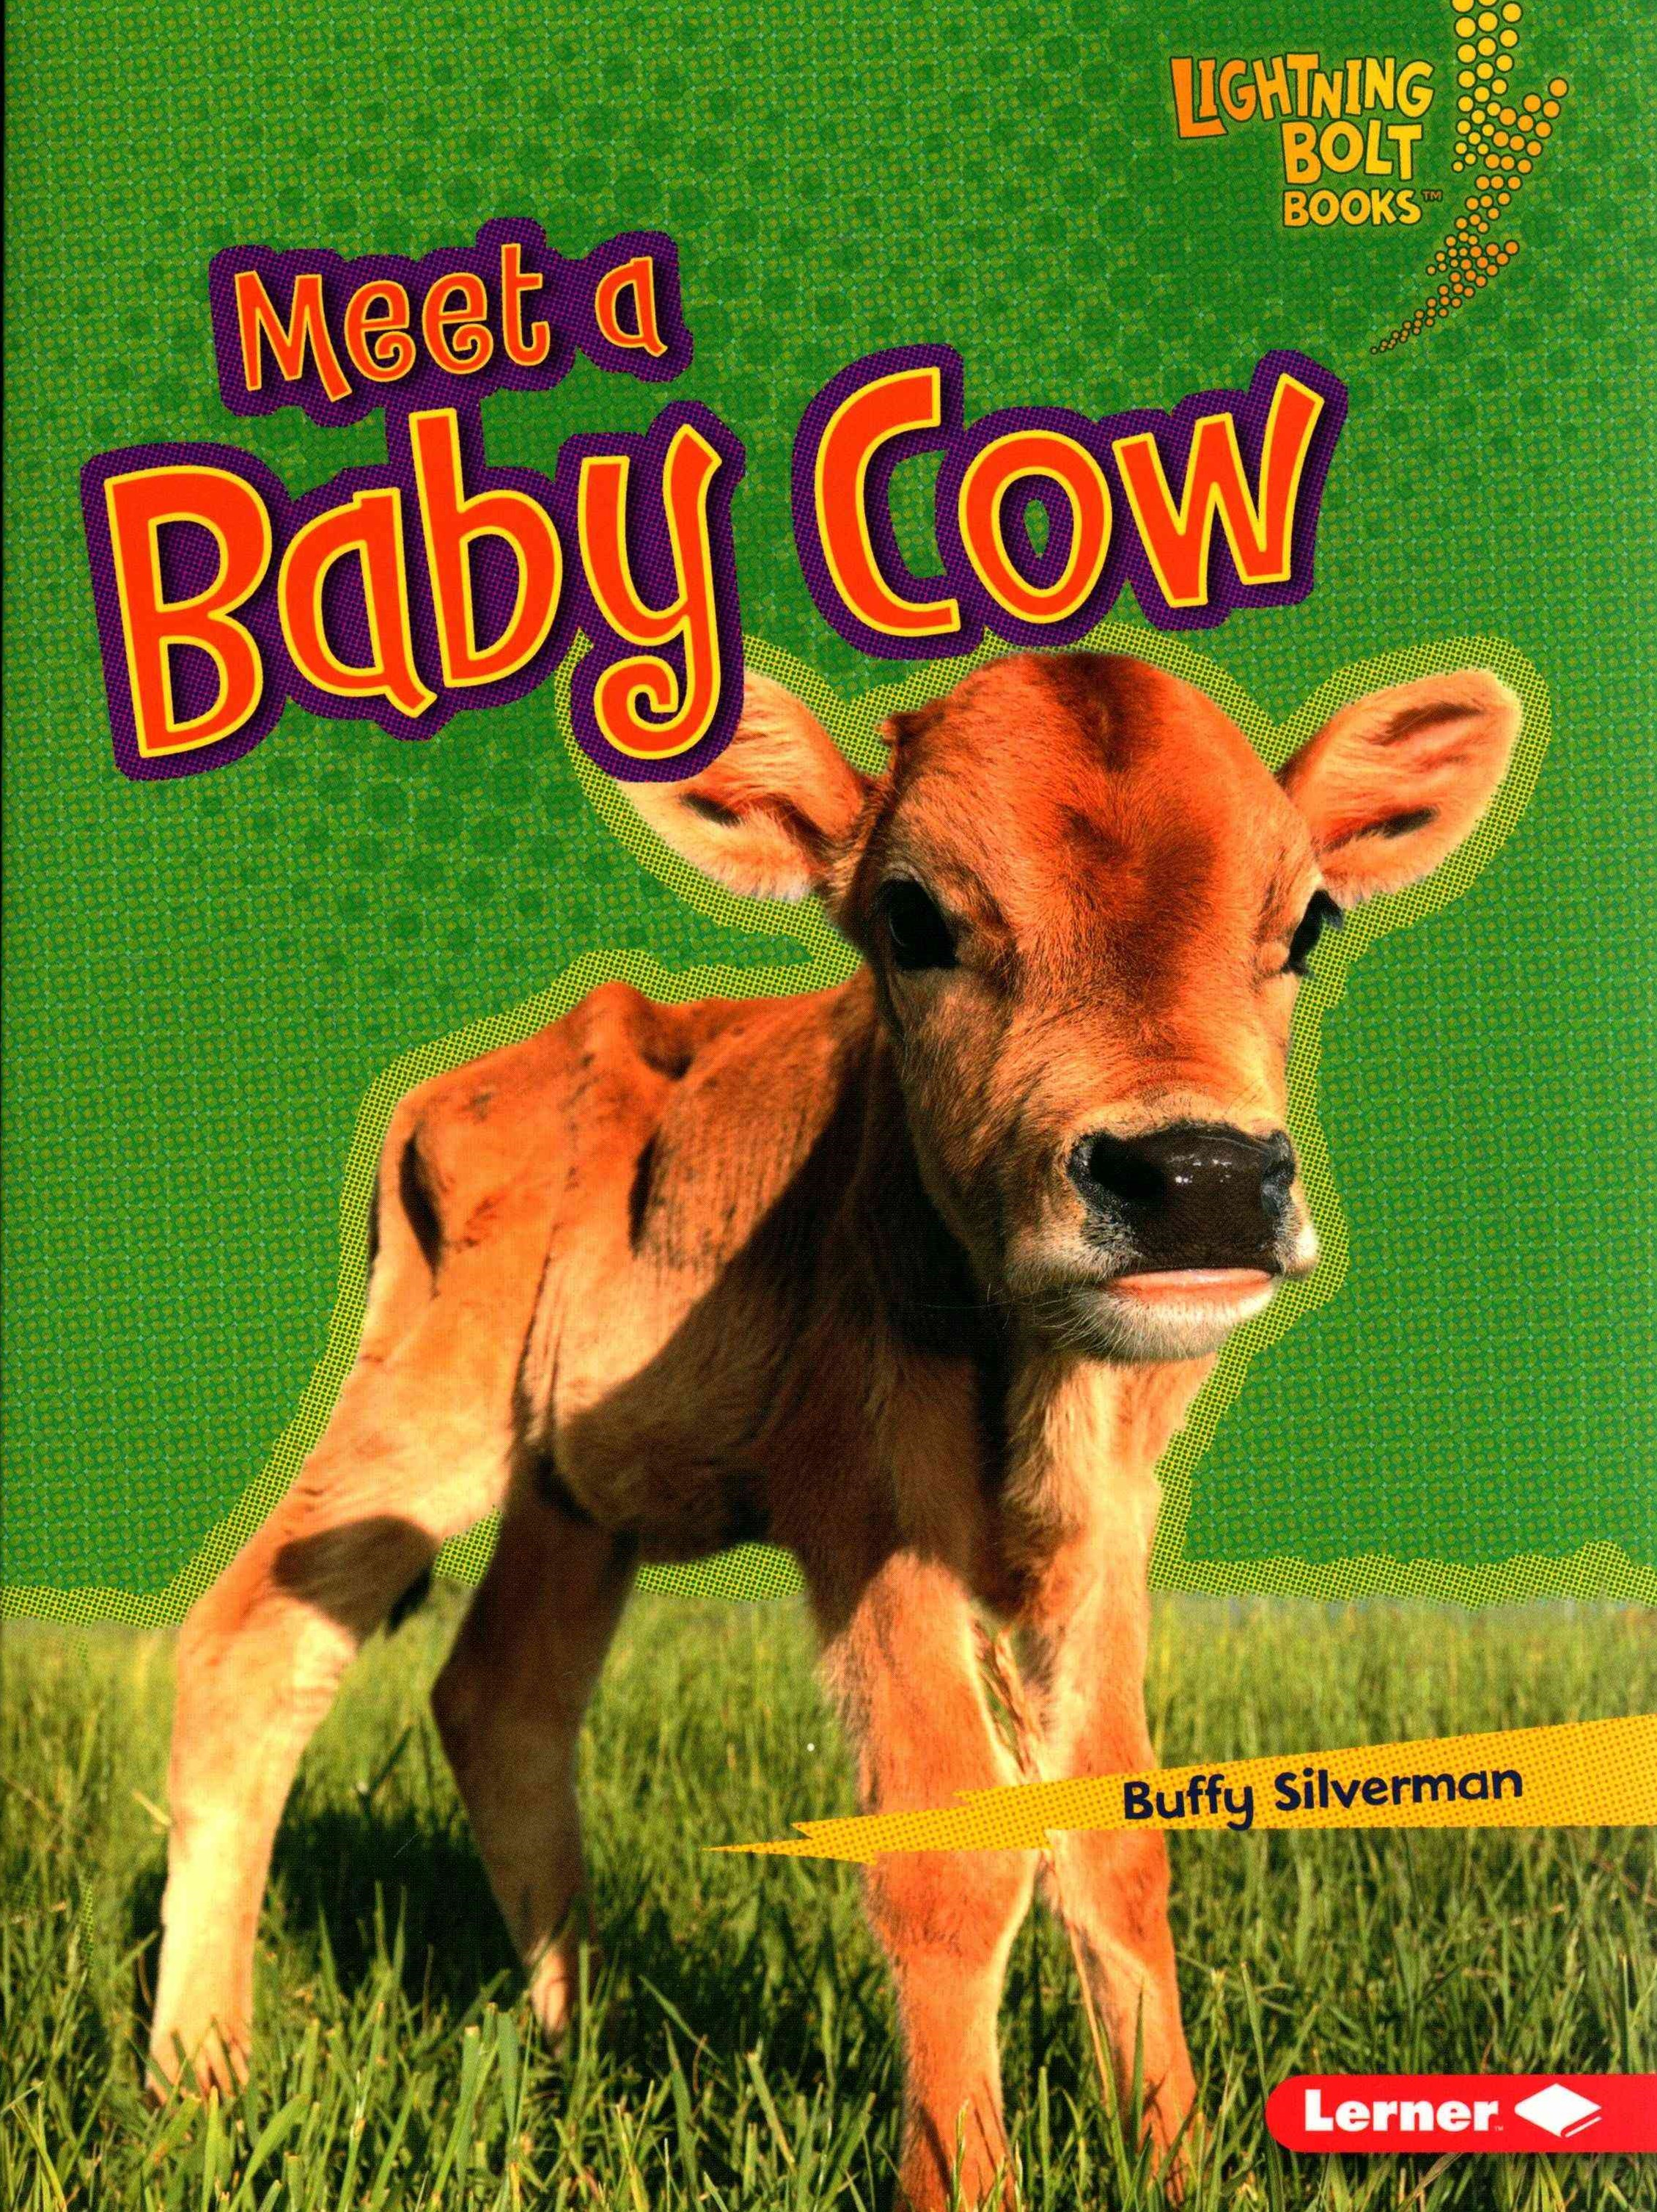 Meet a Baby Cow - Baby Farm Animals - Lightning Bolt